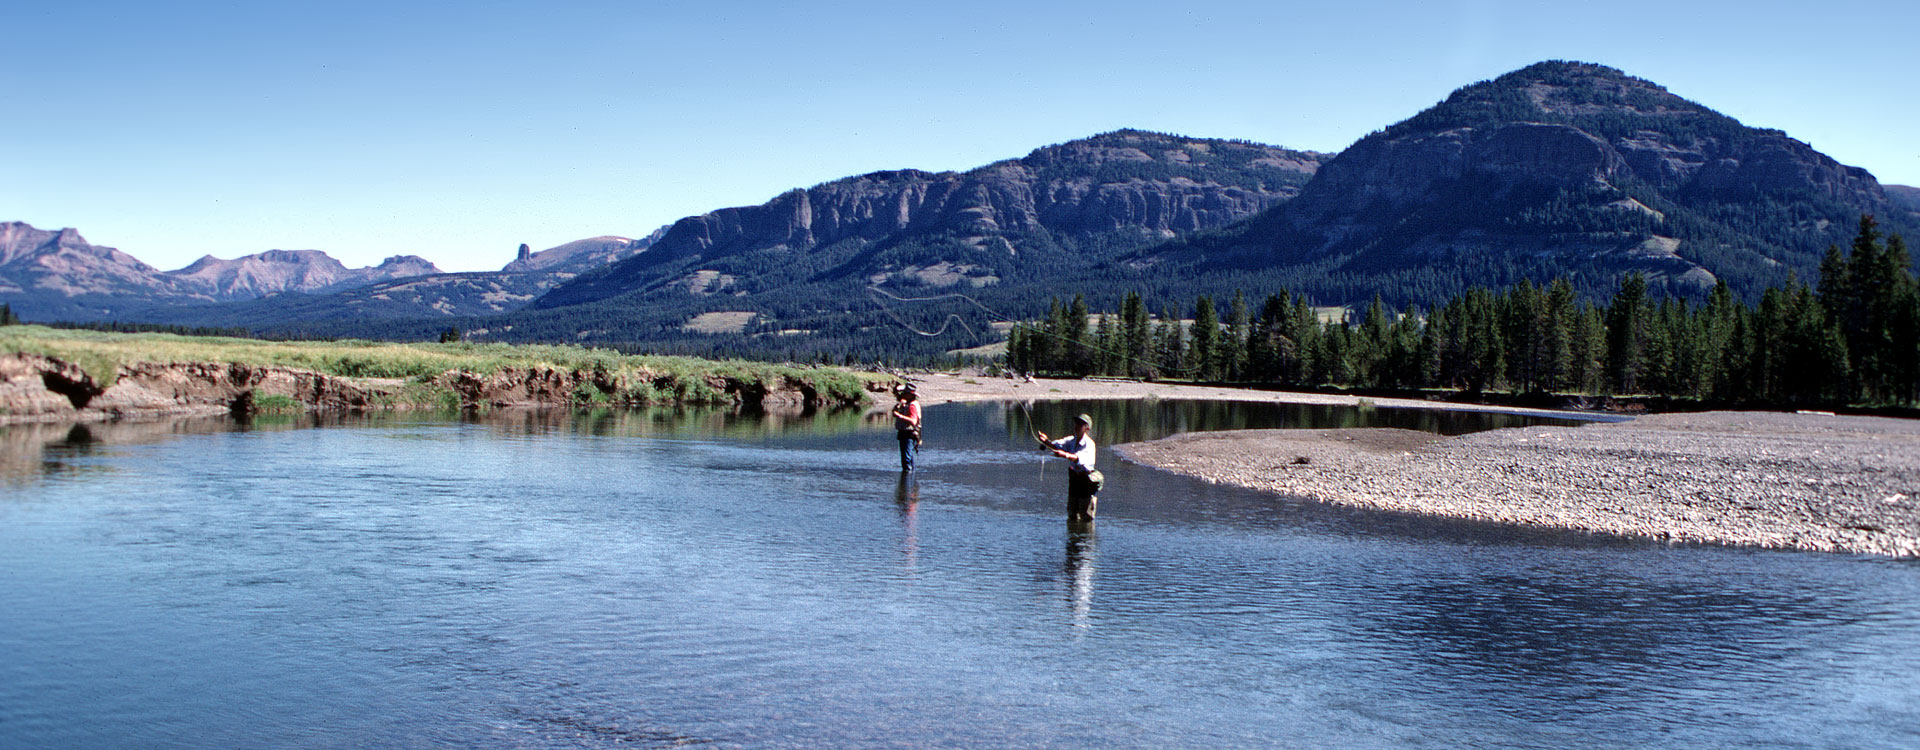 Fly fishing in Yellowstone.